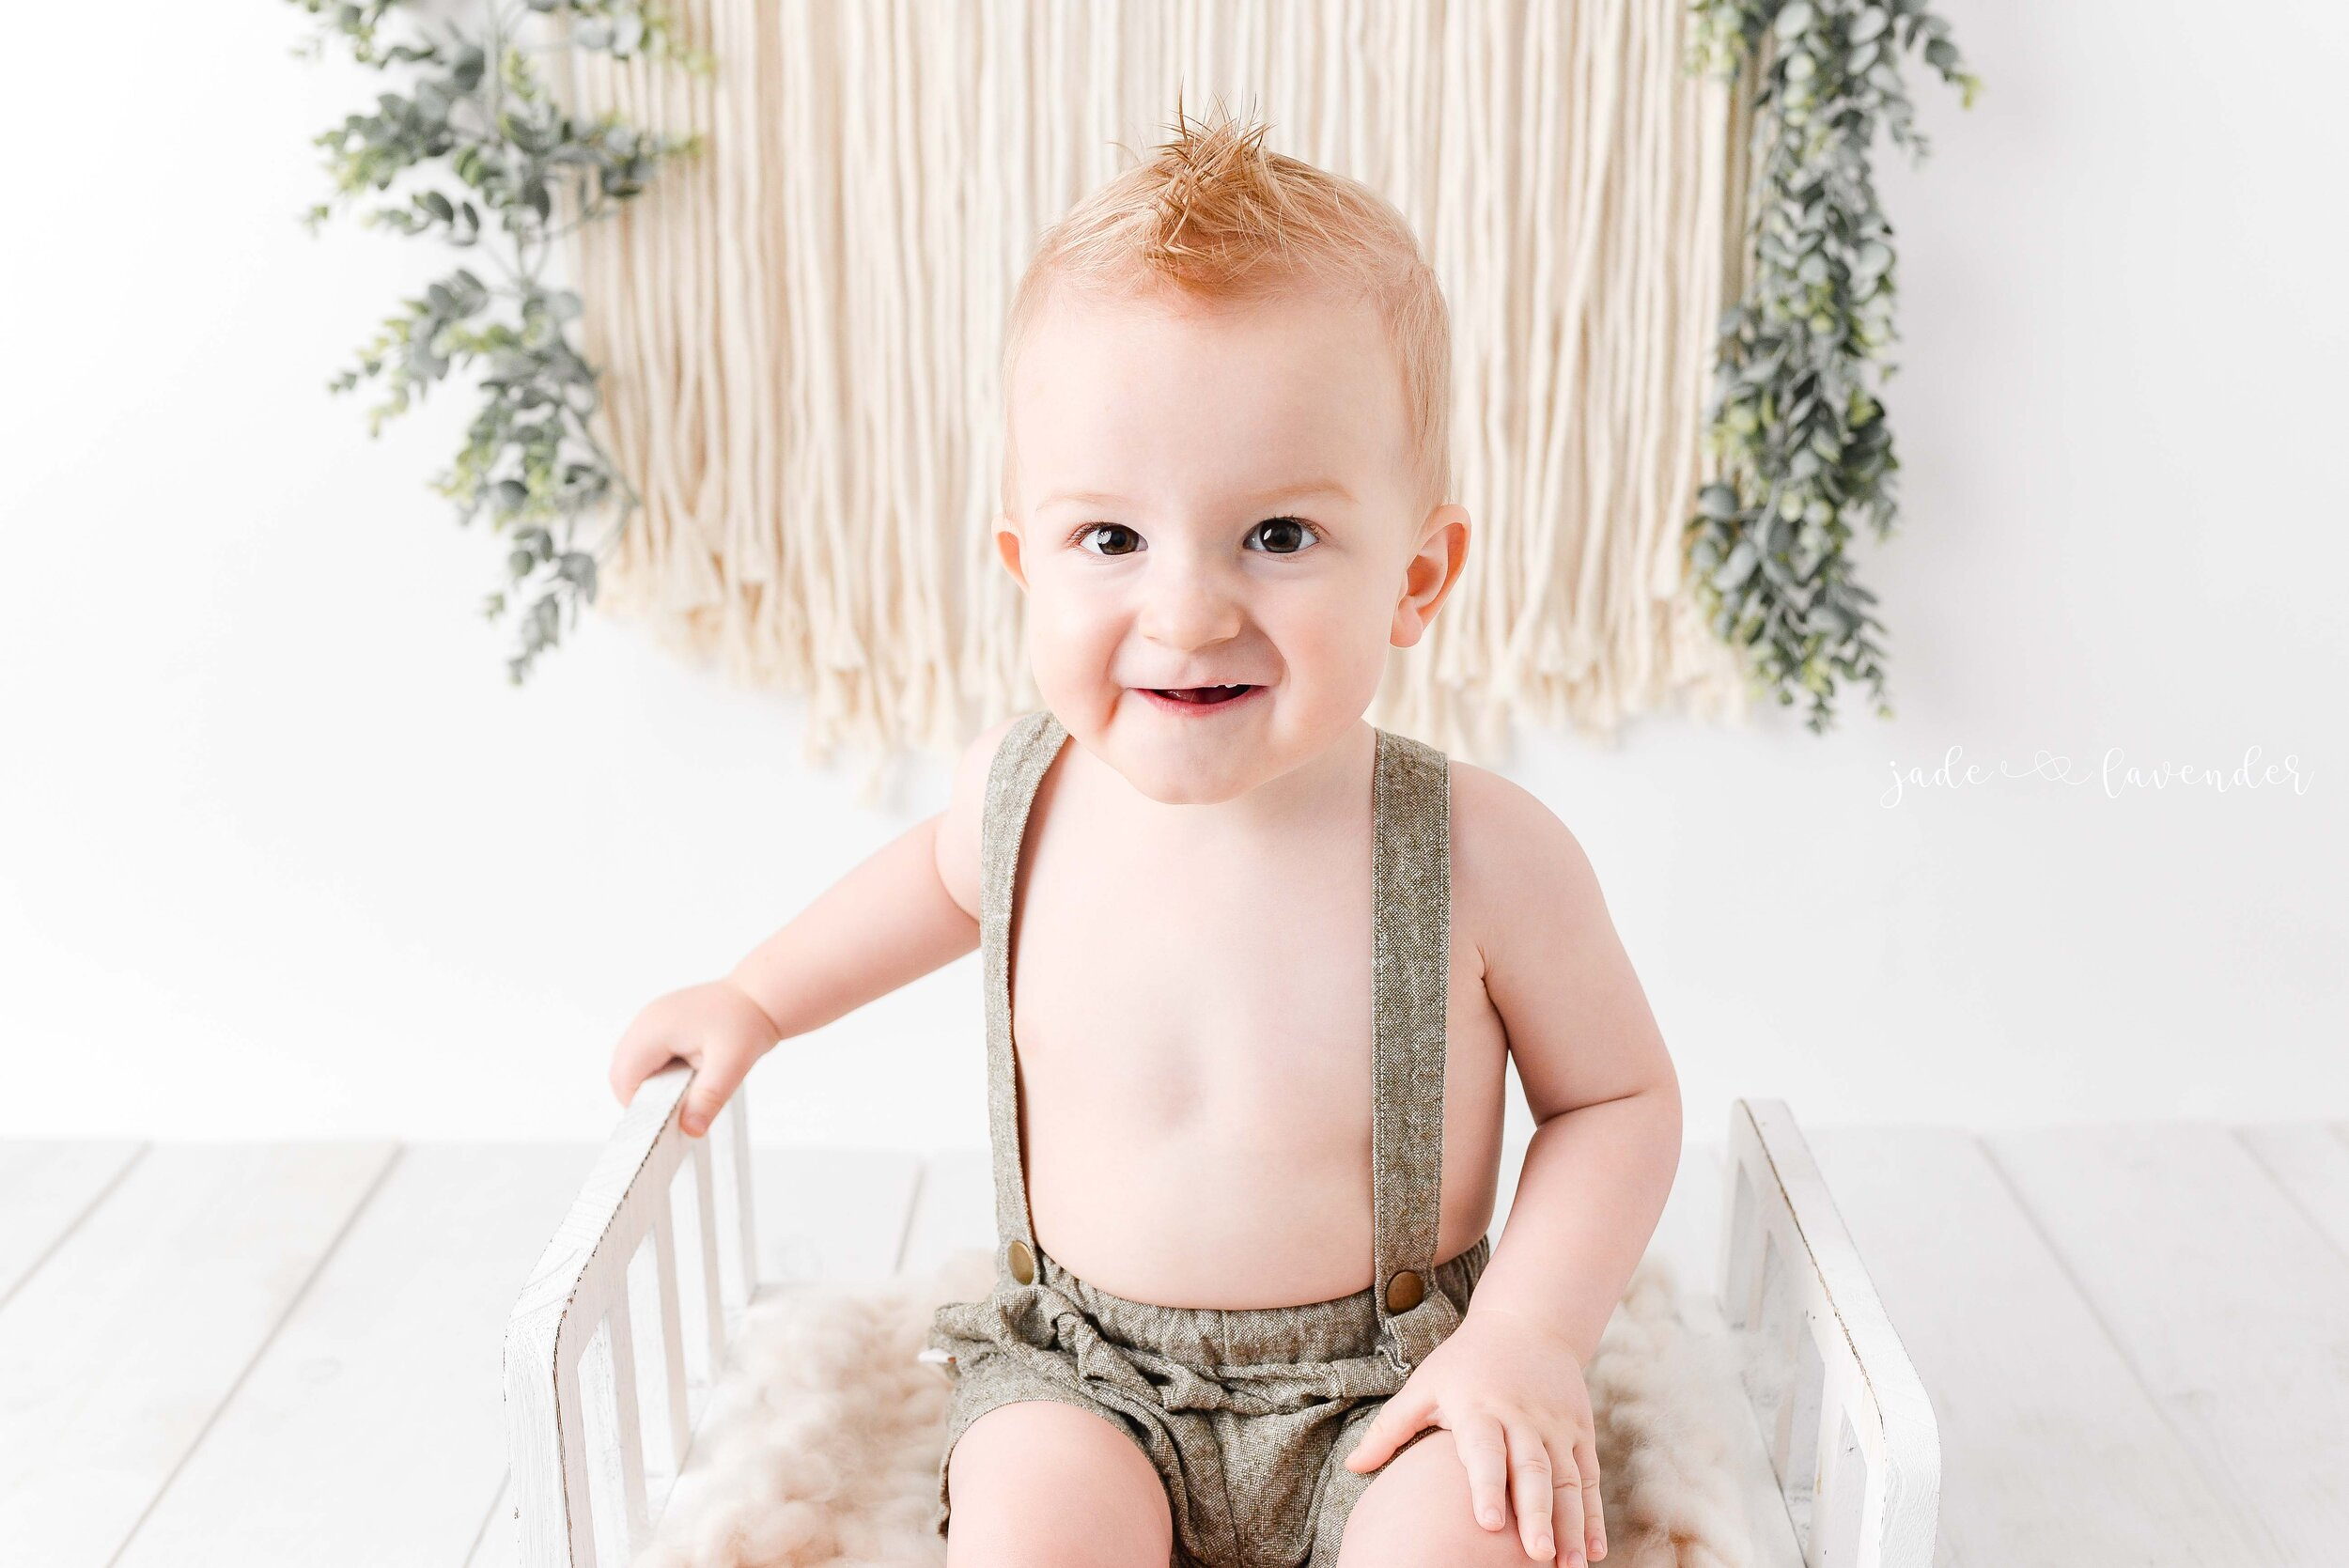 one-year-old-photos-milestone-photography-milk-bath-images-spokane-washington-newborn-photography (1 of 6).jpg